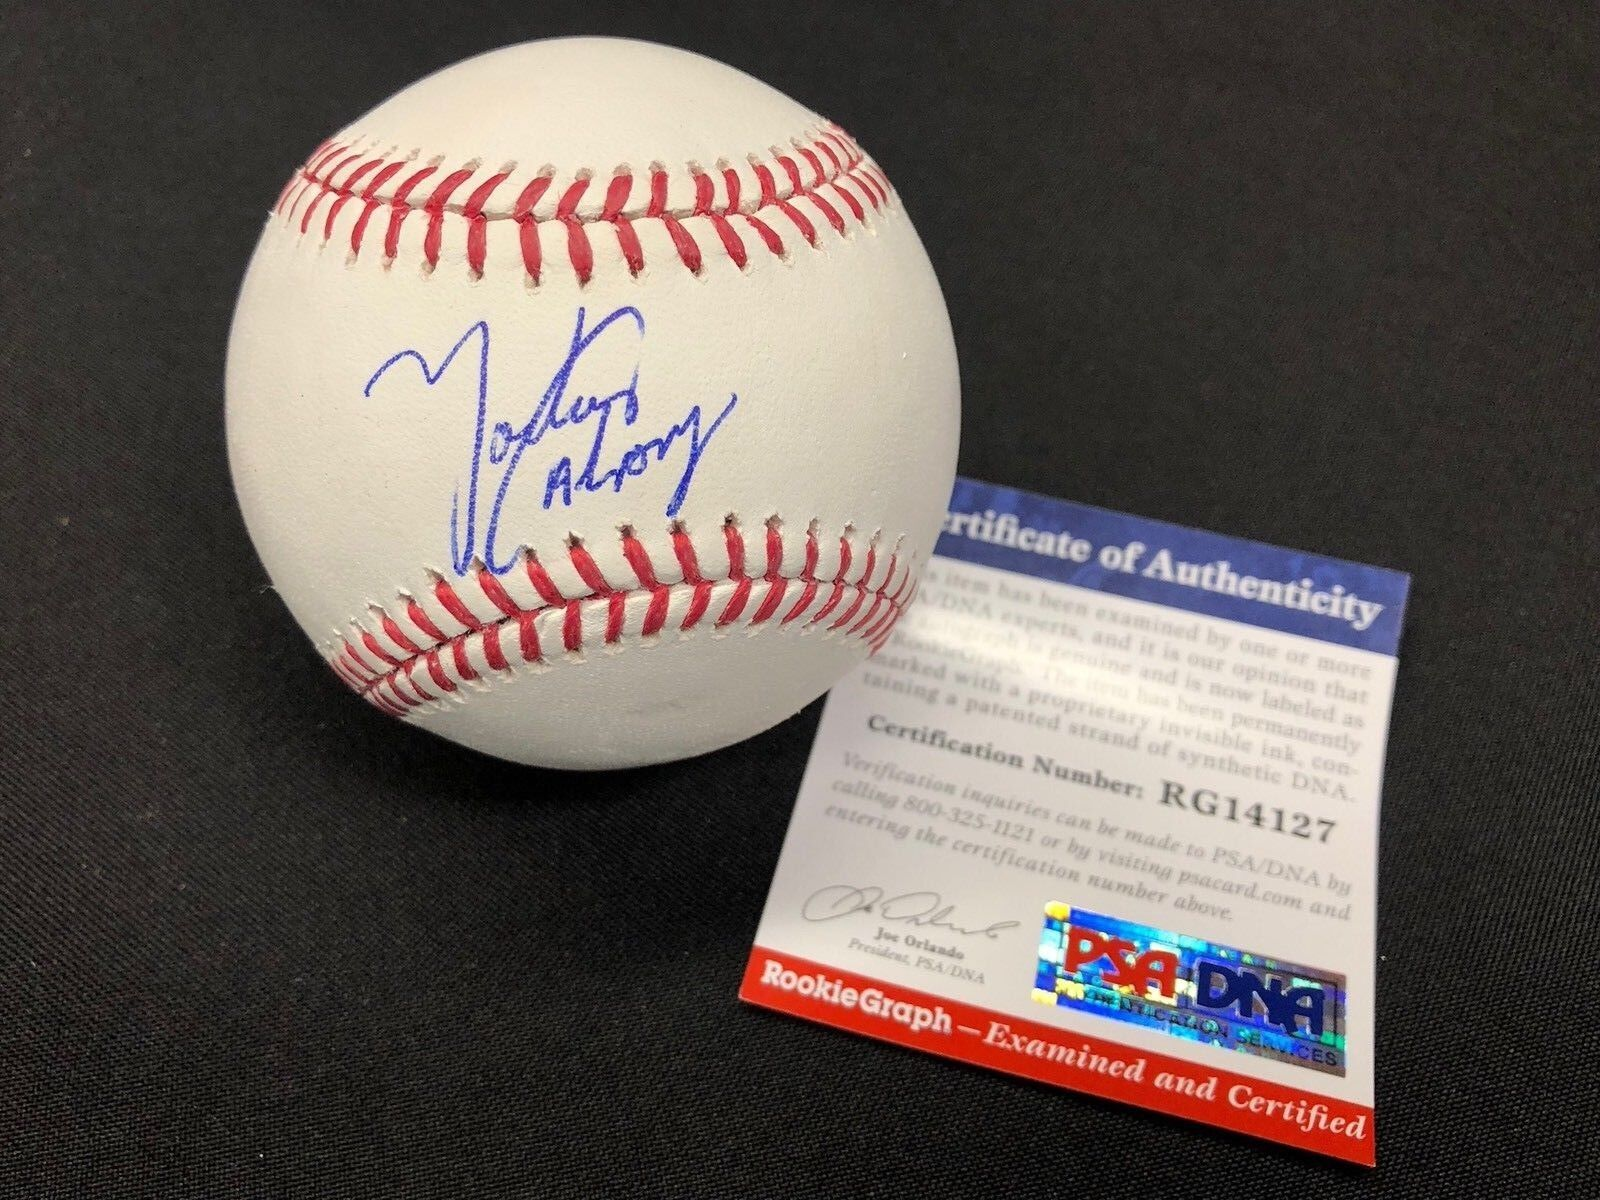 Yadier Alvarez Signed Major League Baseball MLB Dodgers PSA Rookie Graph RG14127